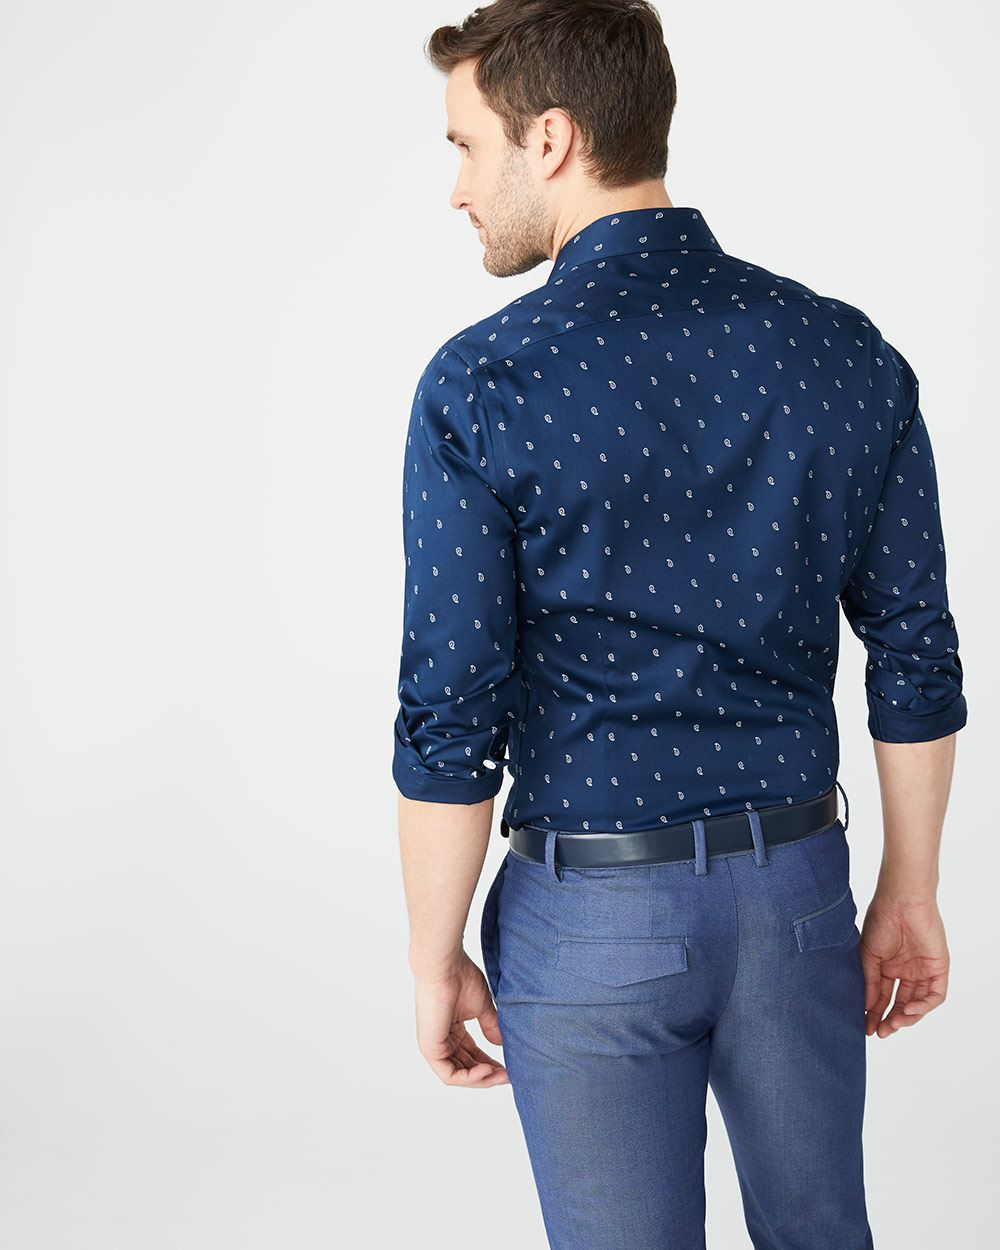 Slim Fit navy paisley dress shirt